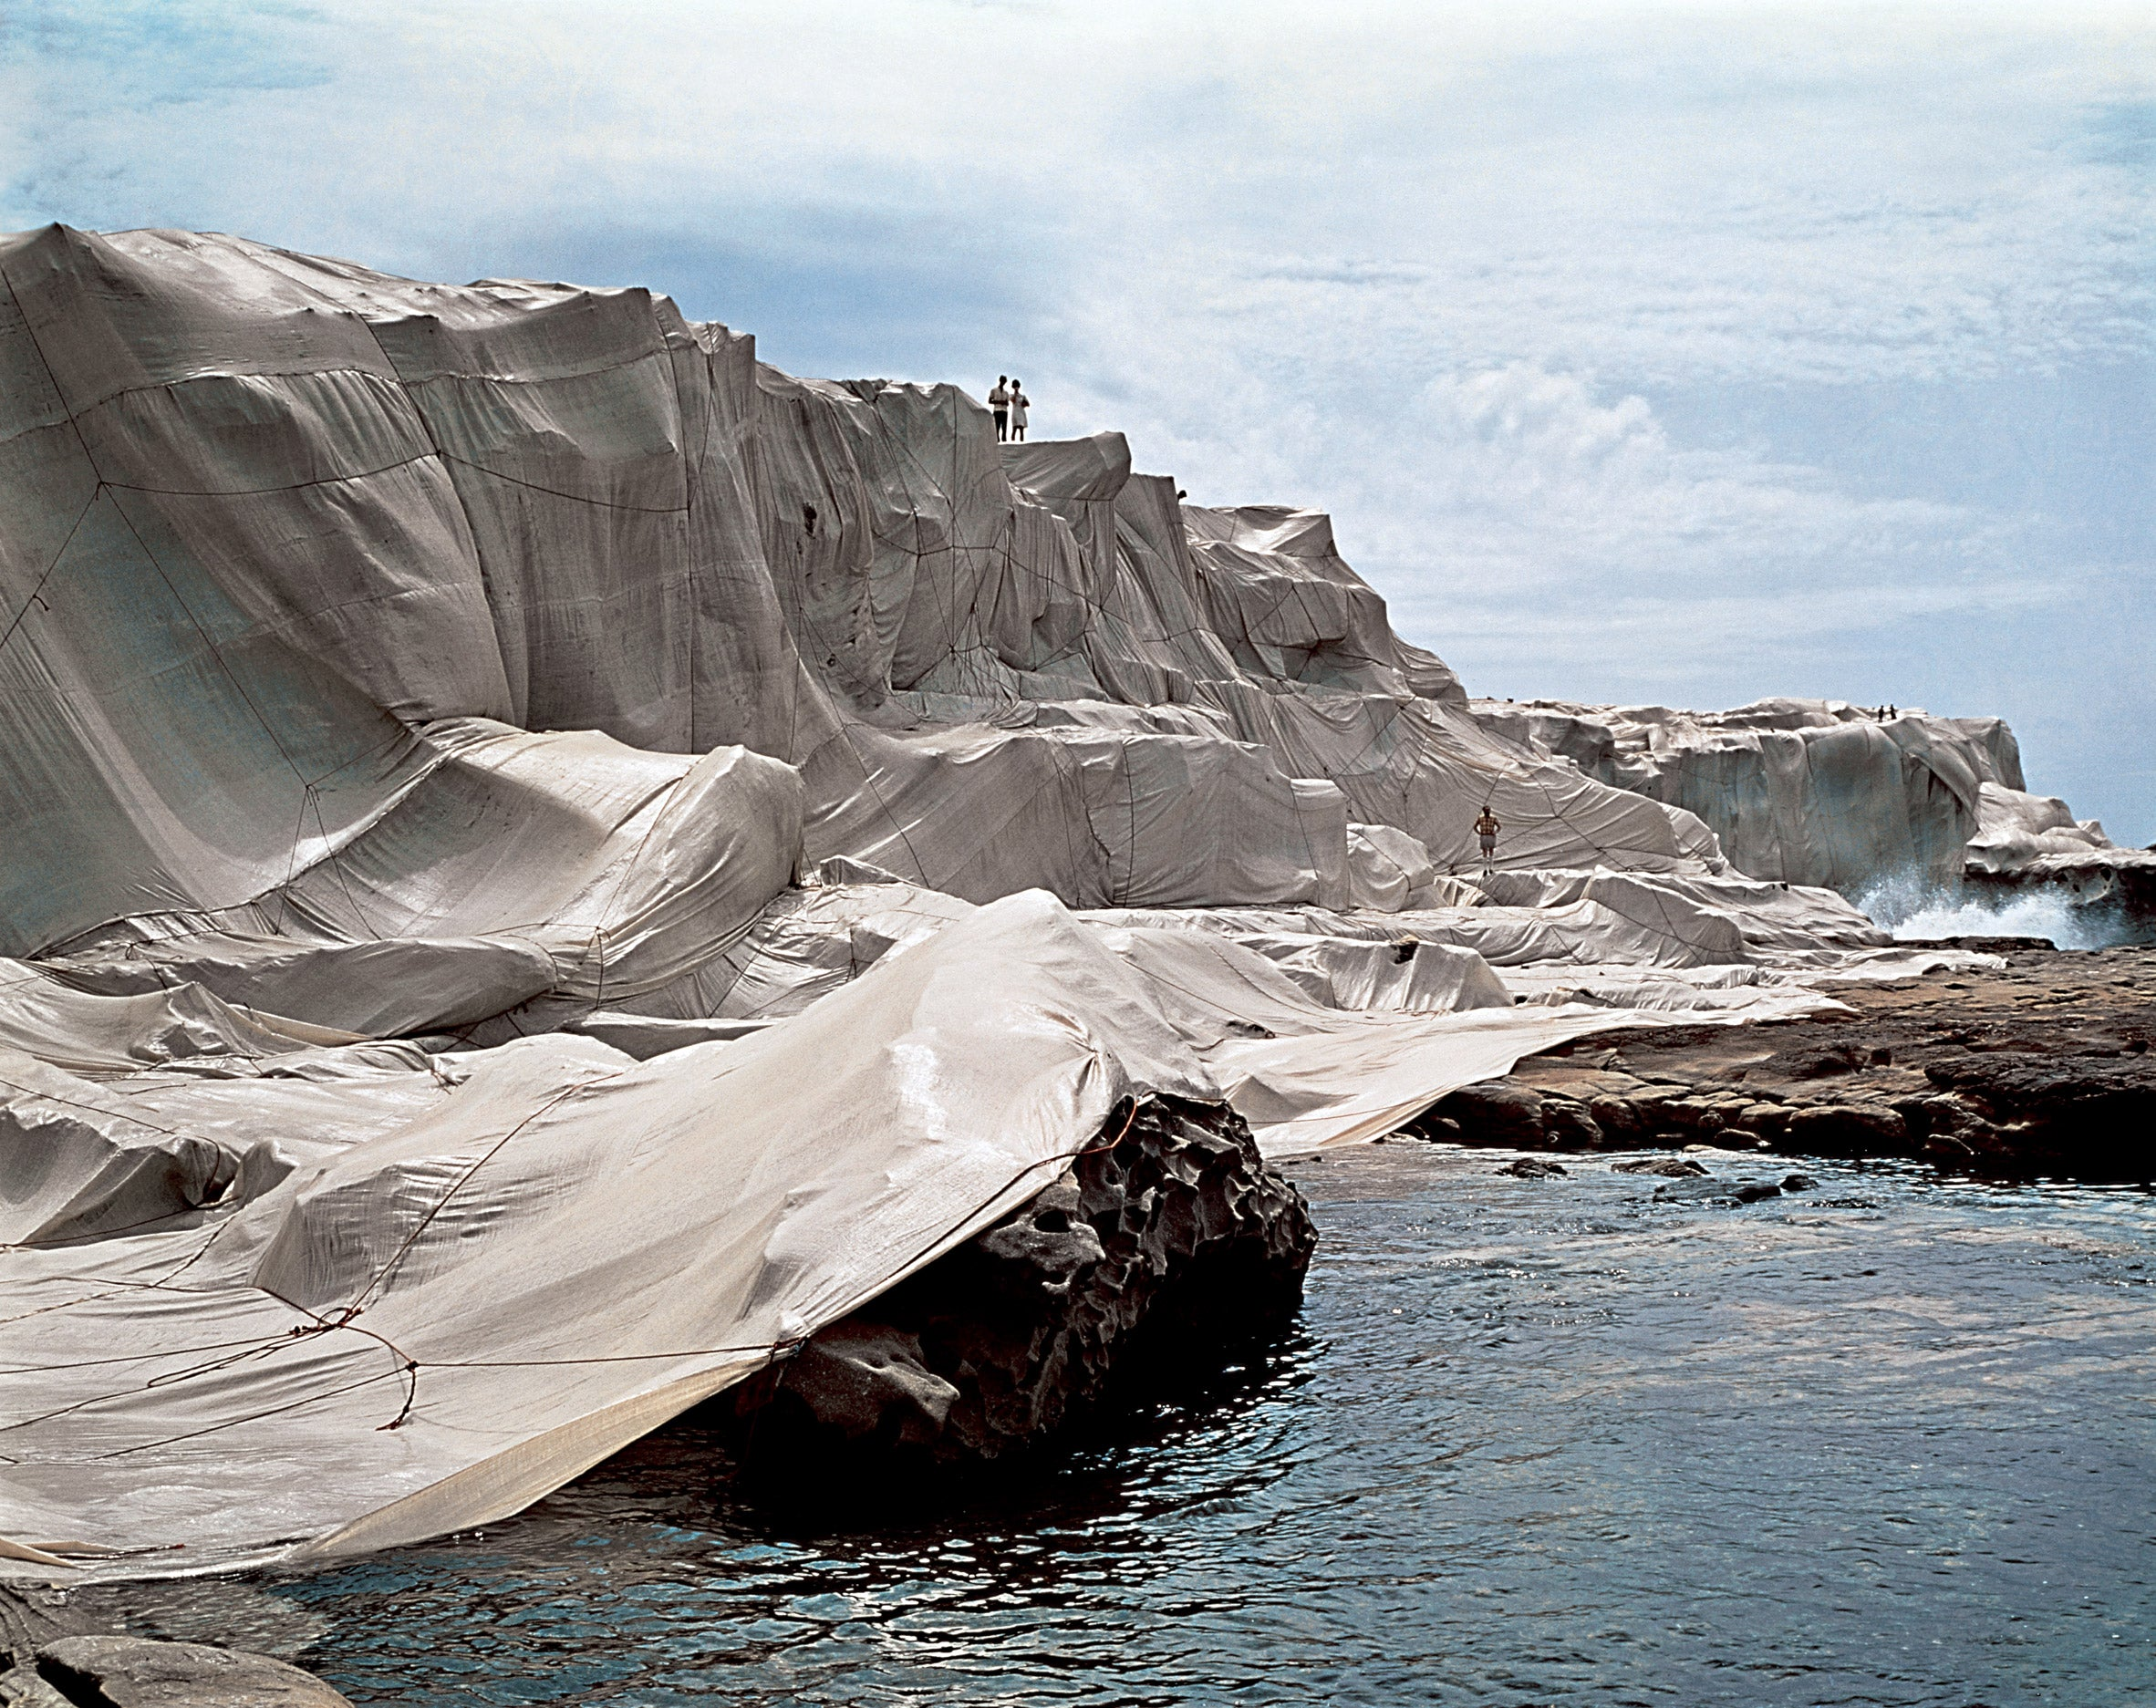 Wrapped Coast by Christo and Jeanne Claude, One Million Square Feet, Little Bay, Sydney, Australia, 1969